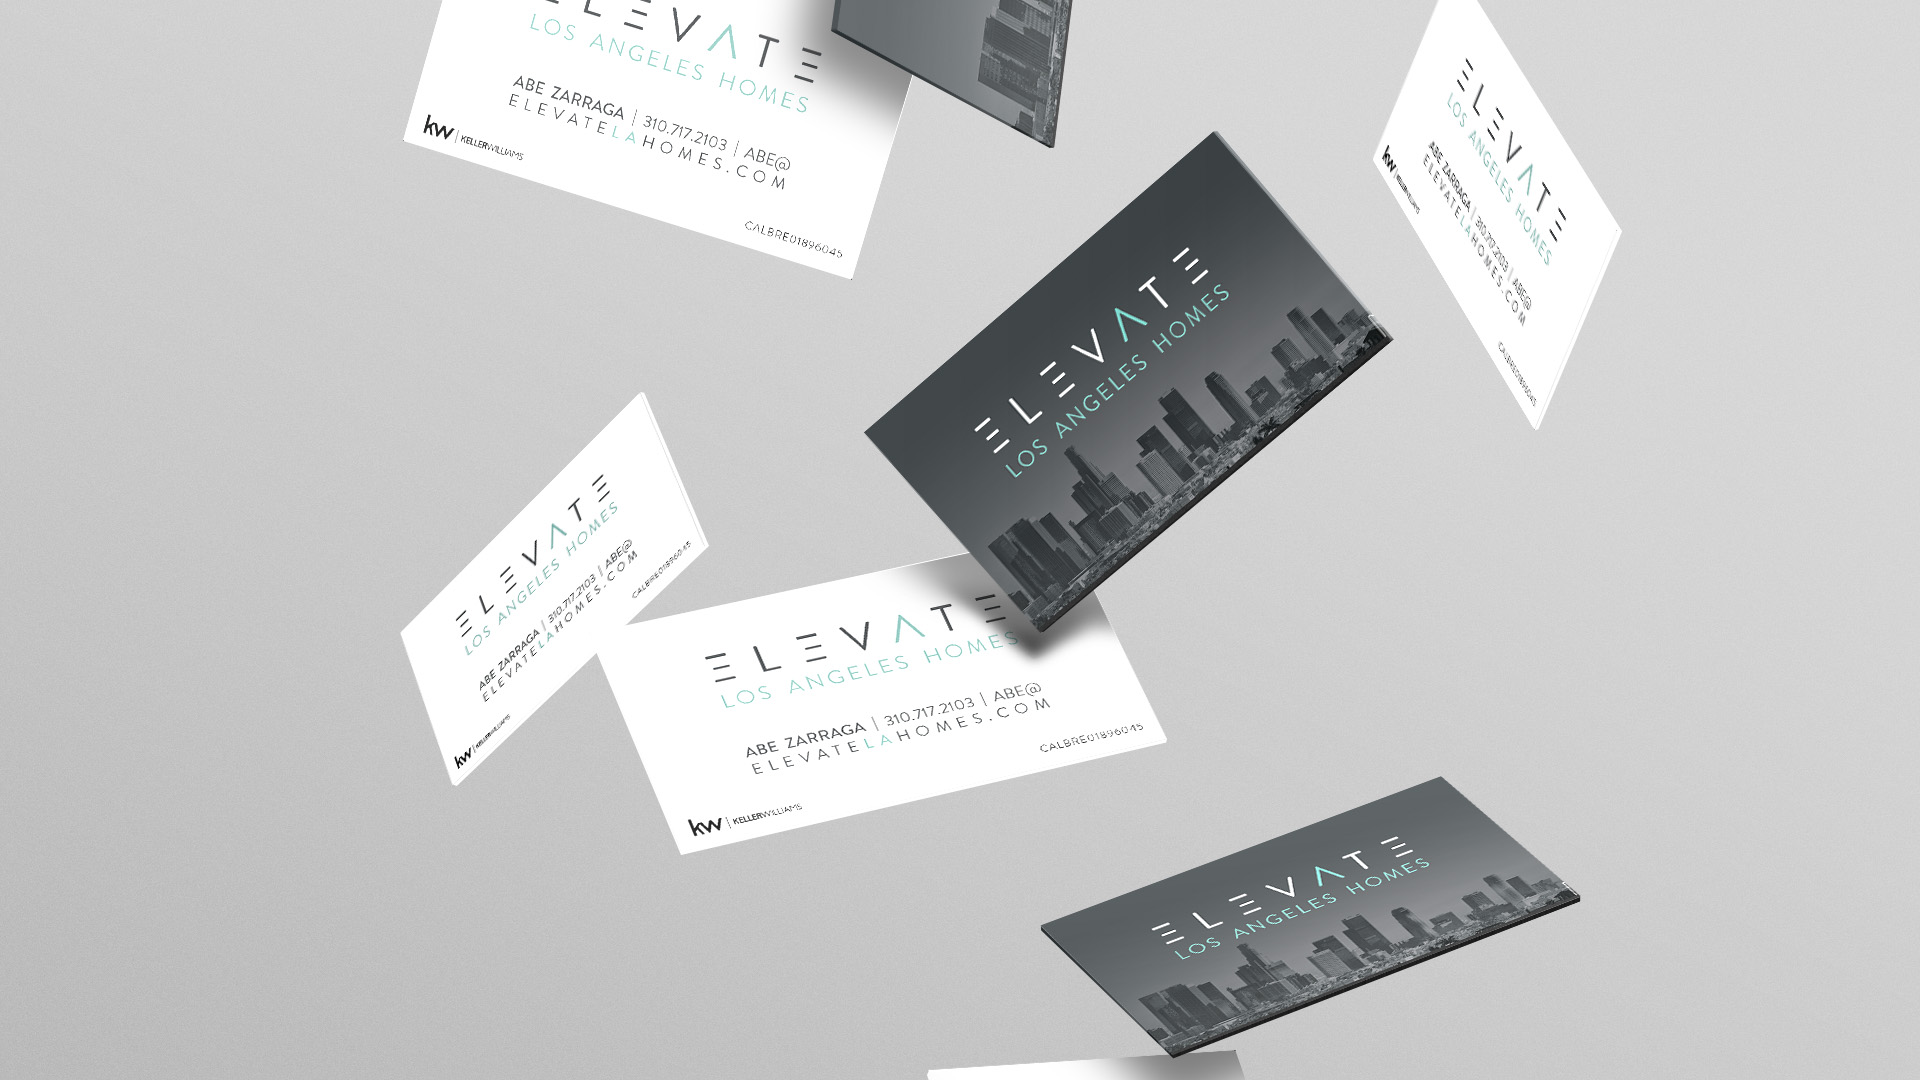 business cards_1.jpg